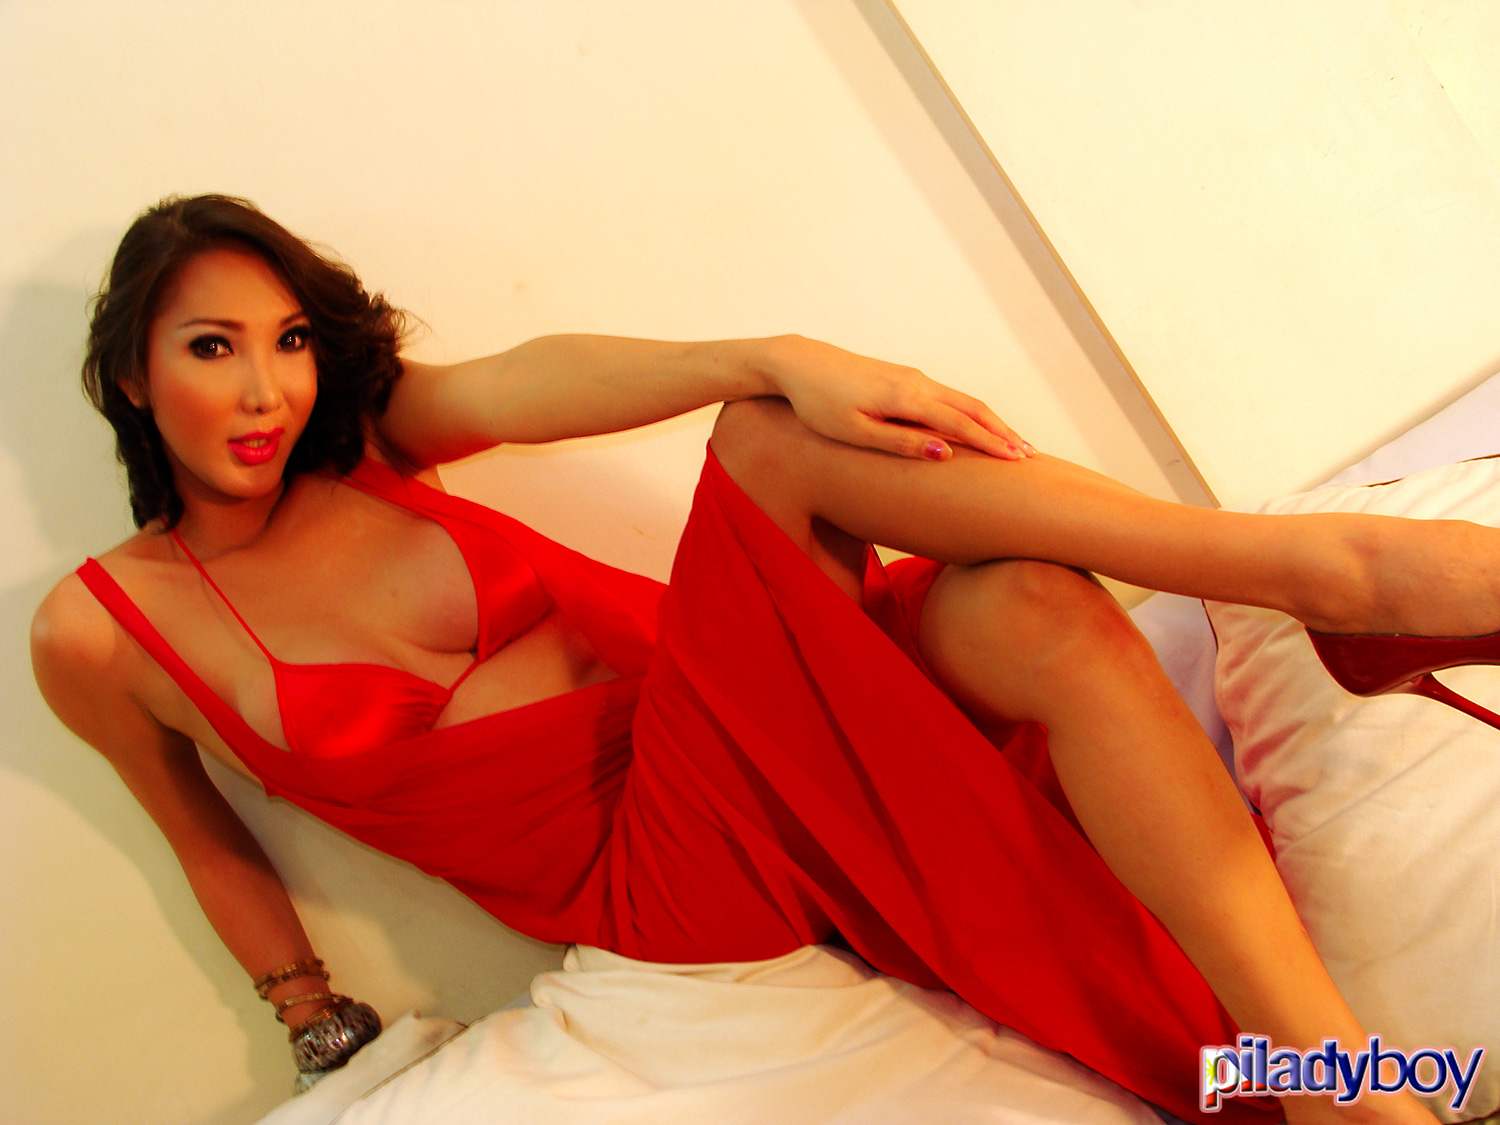 Filipino ladyboy shemale